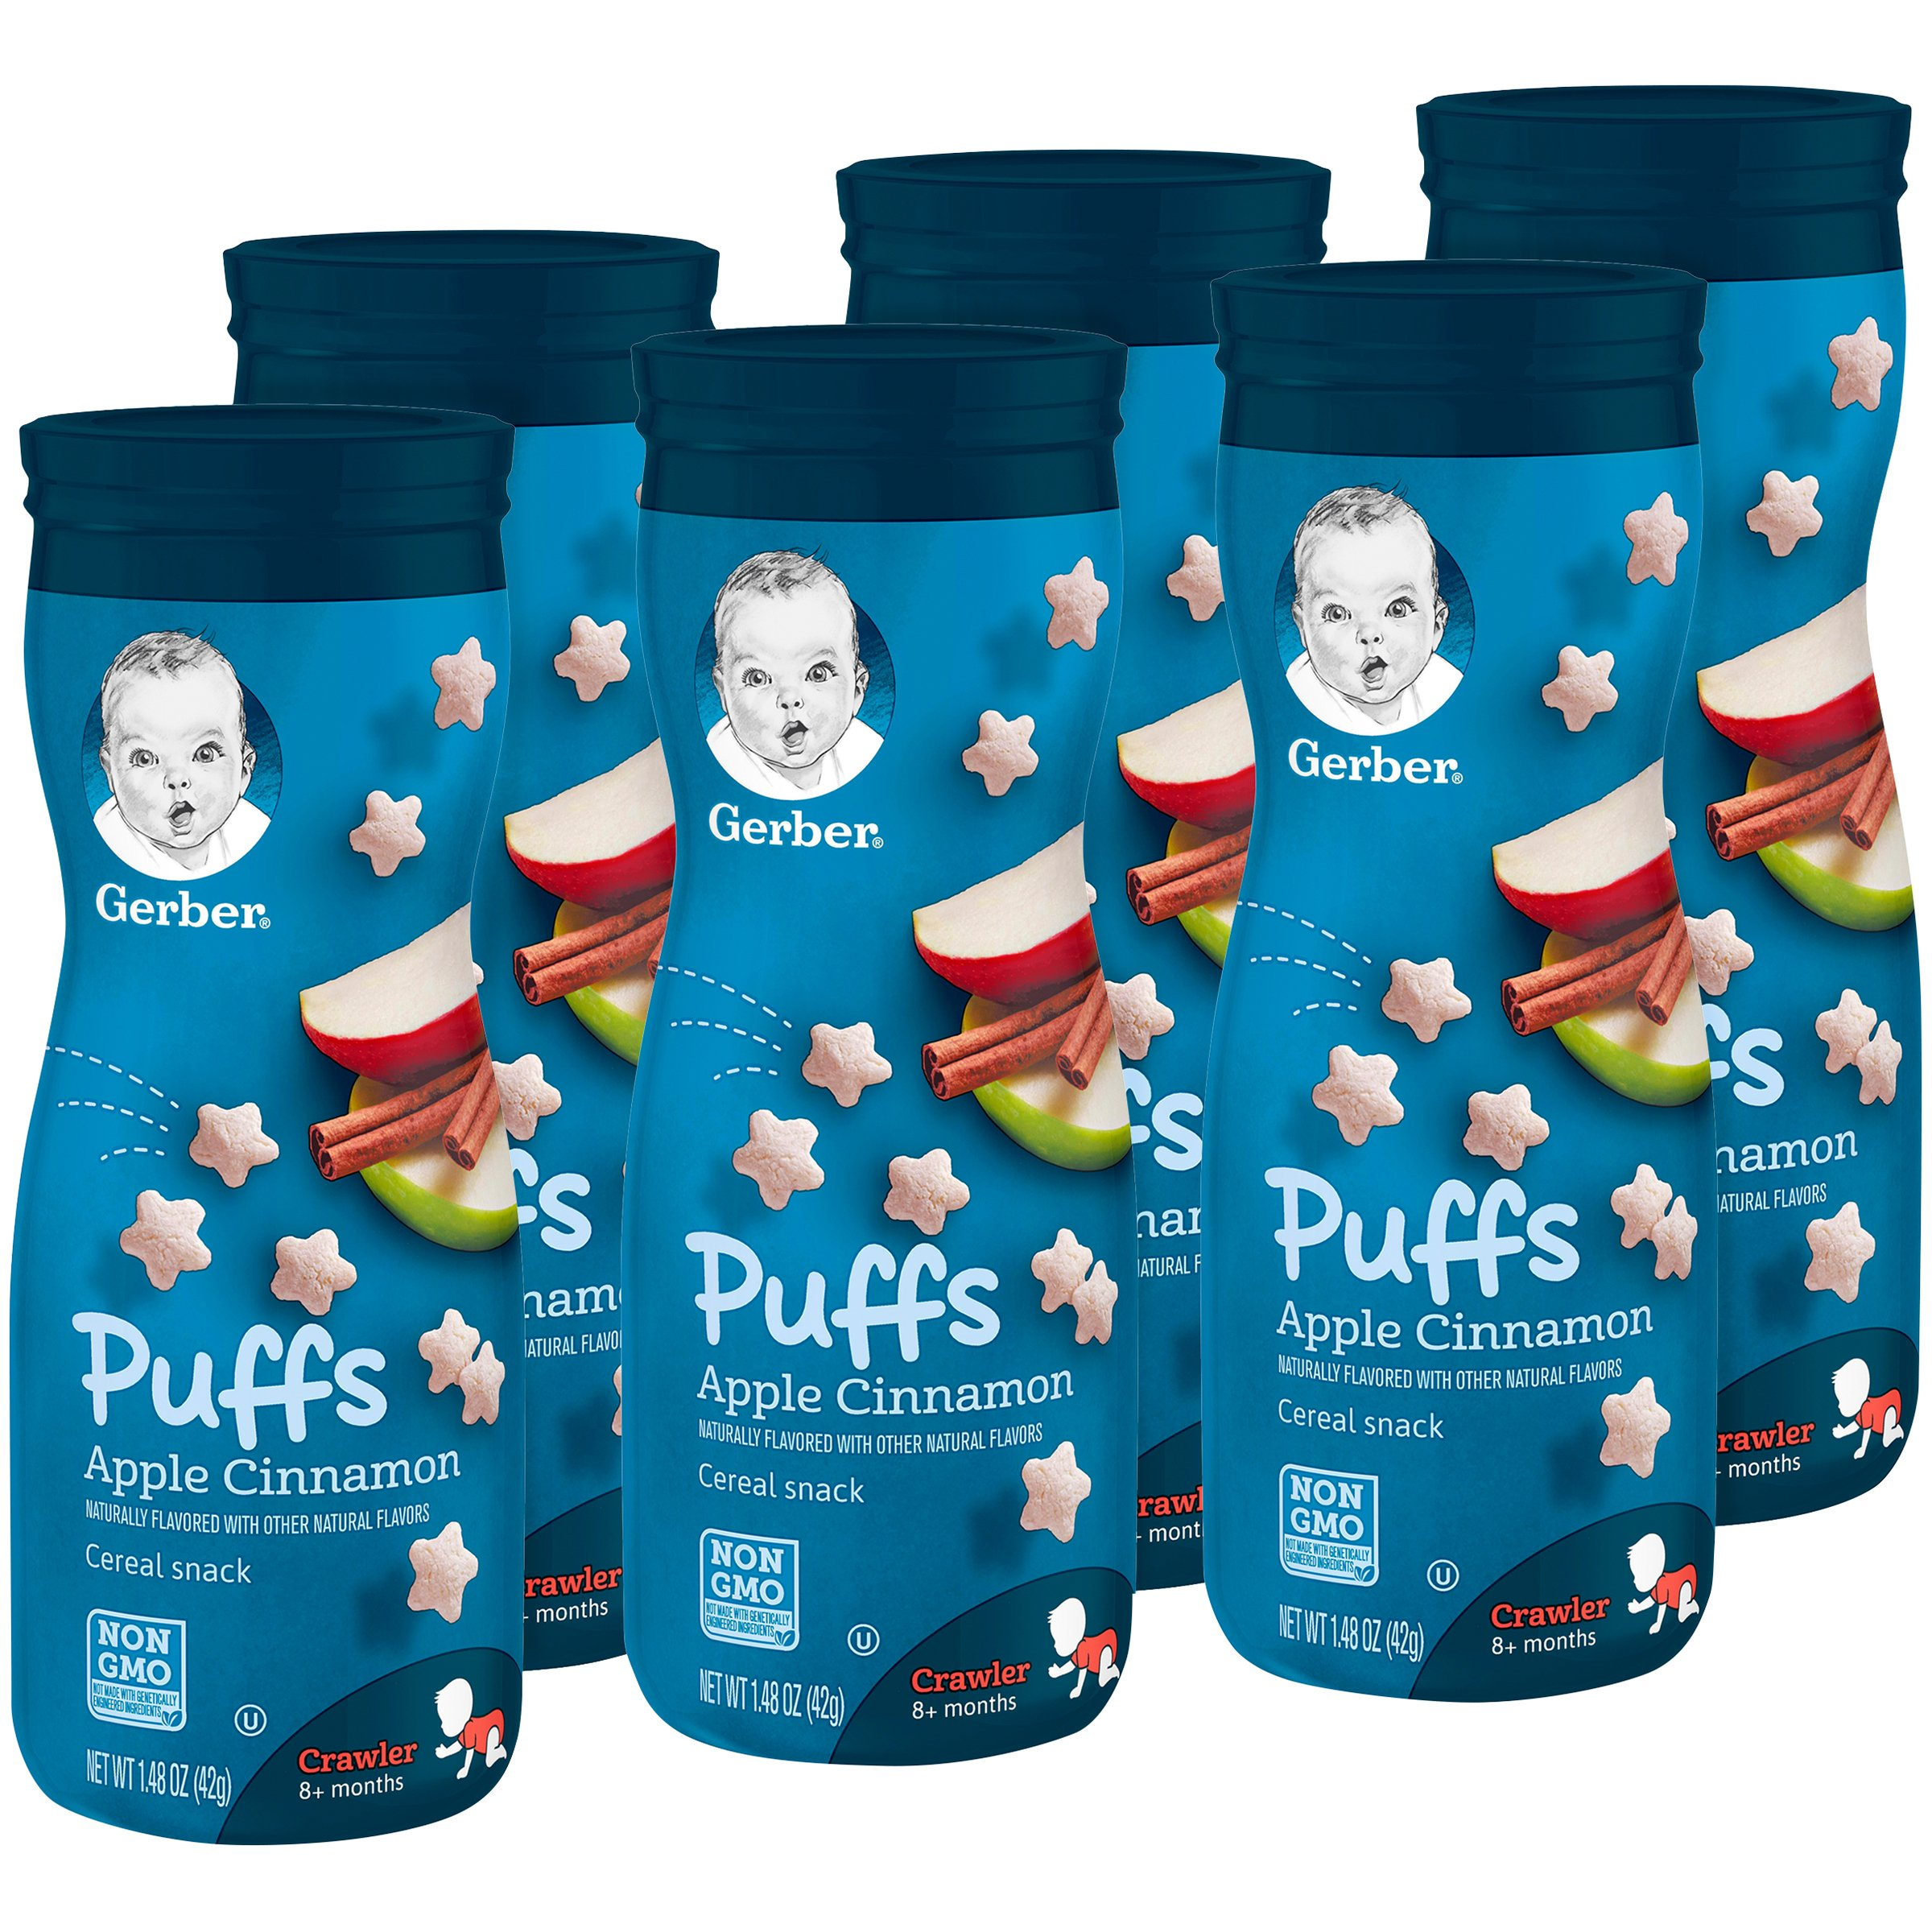 Gerber Puffs Cereal Snack, Apple Cinnamon, 1.48 Ounce, 6 Count by GERBER